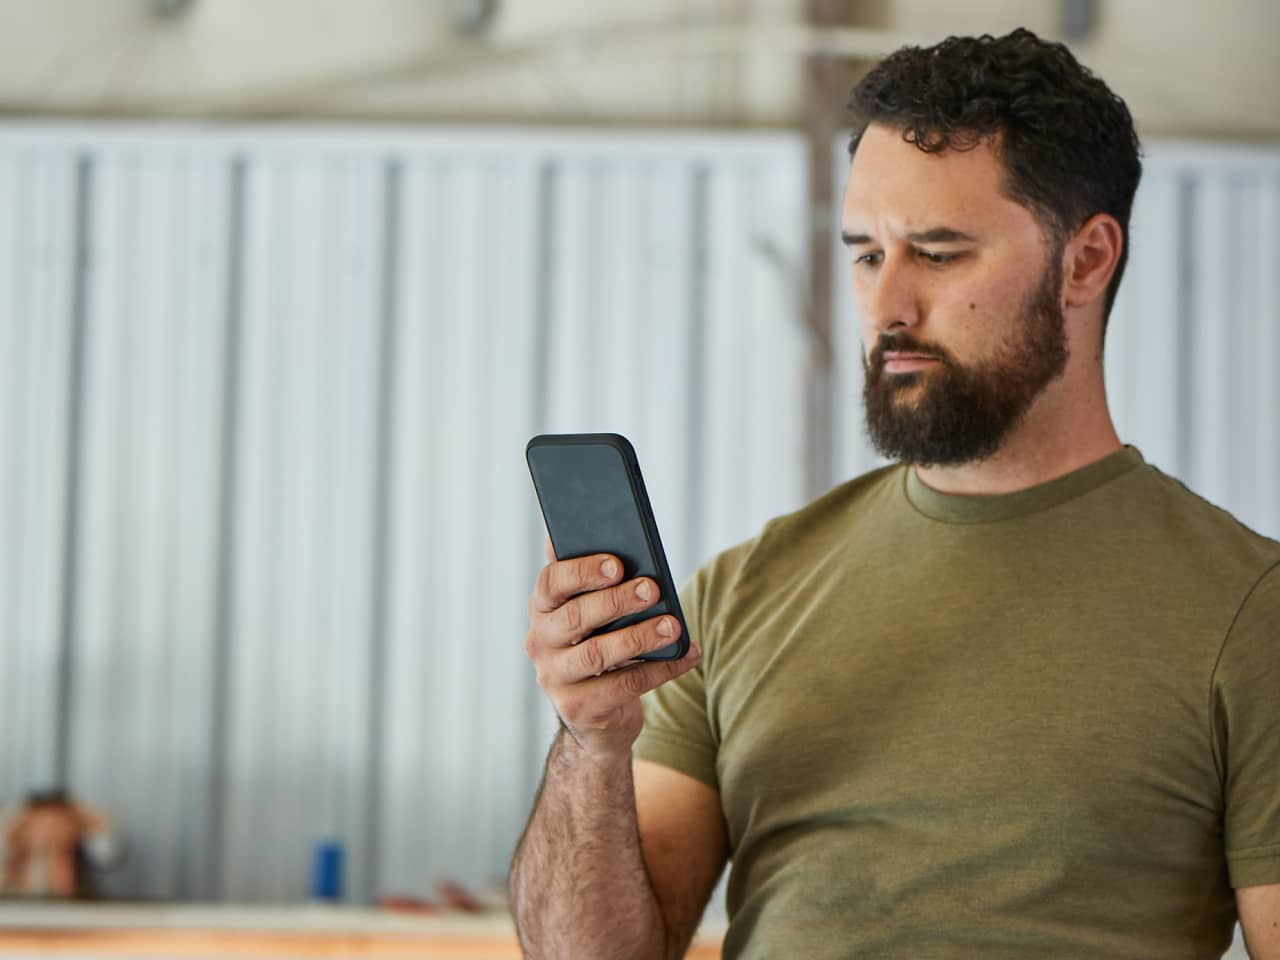 Person using a mobile phone